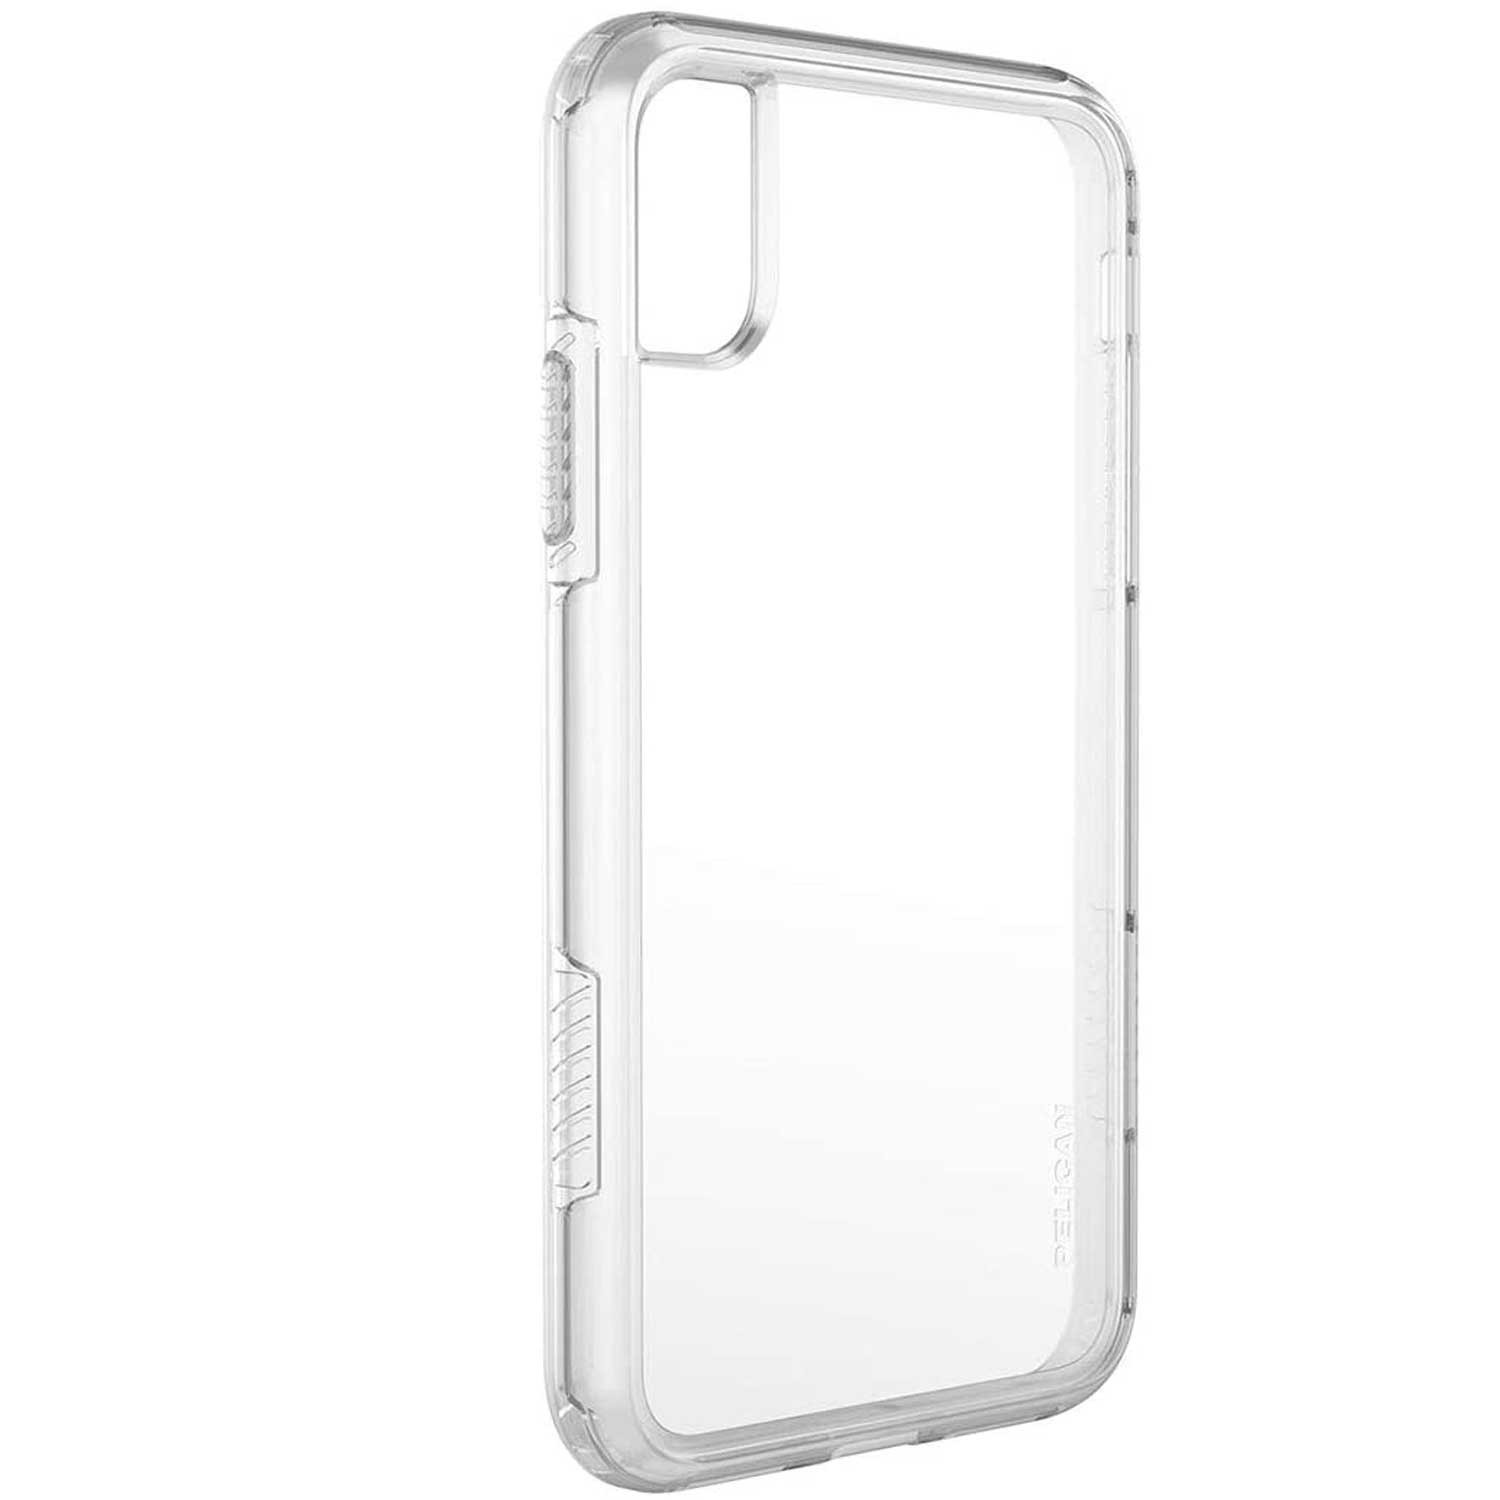 Case - PELICAN Adventurer for iPhone Xr Clear